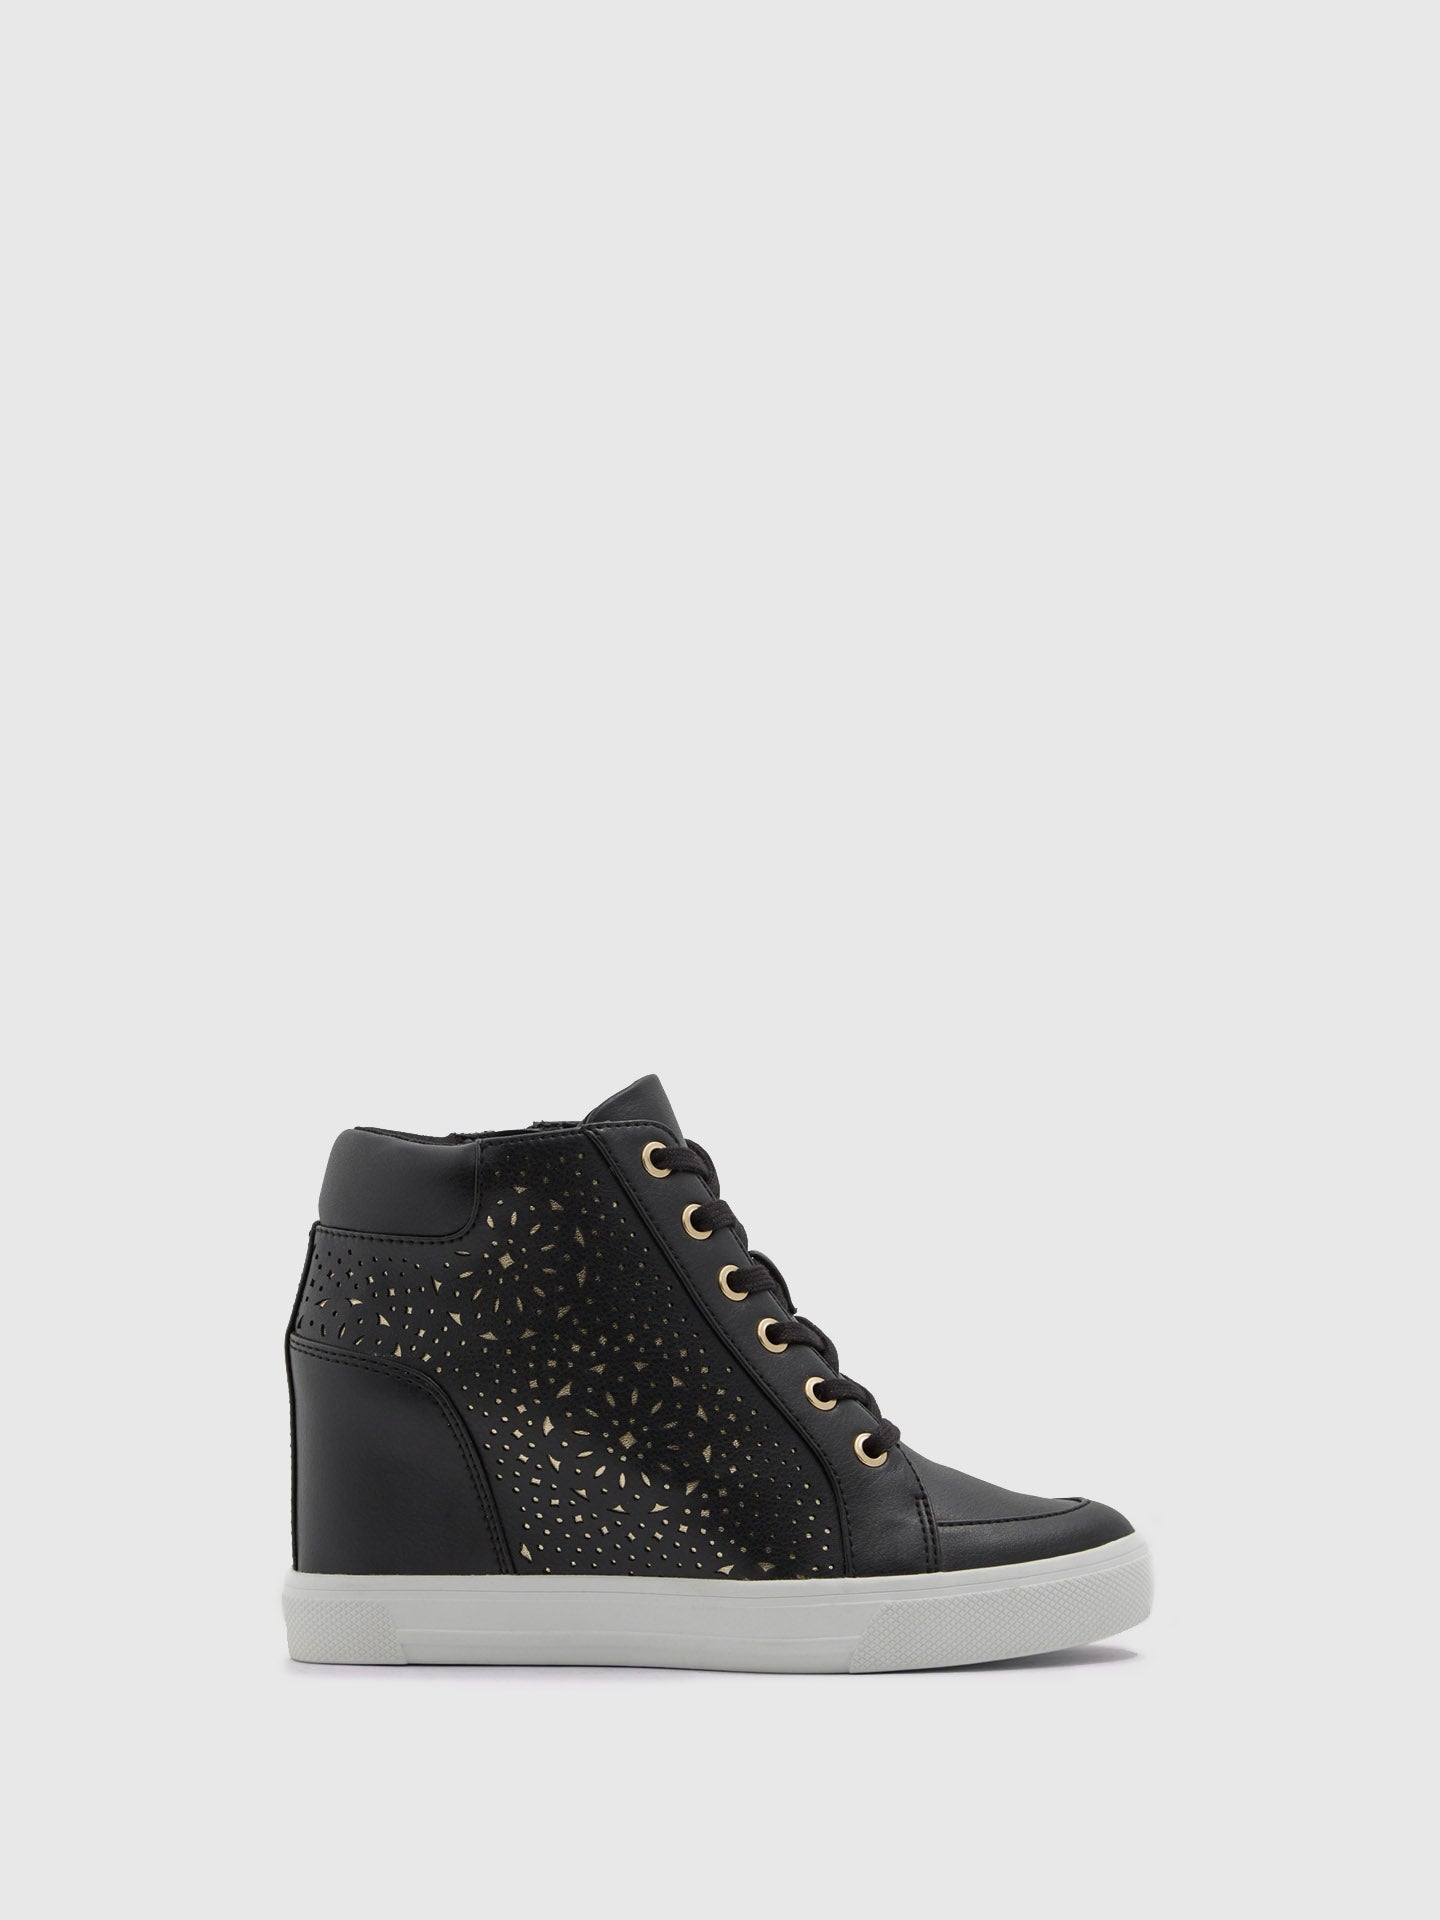 Aldo Black Hi-Top Trainers